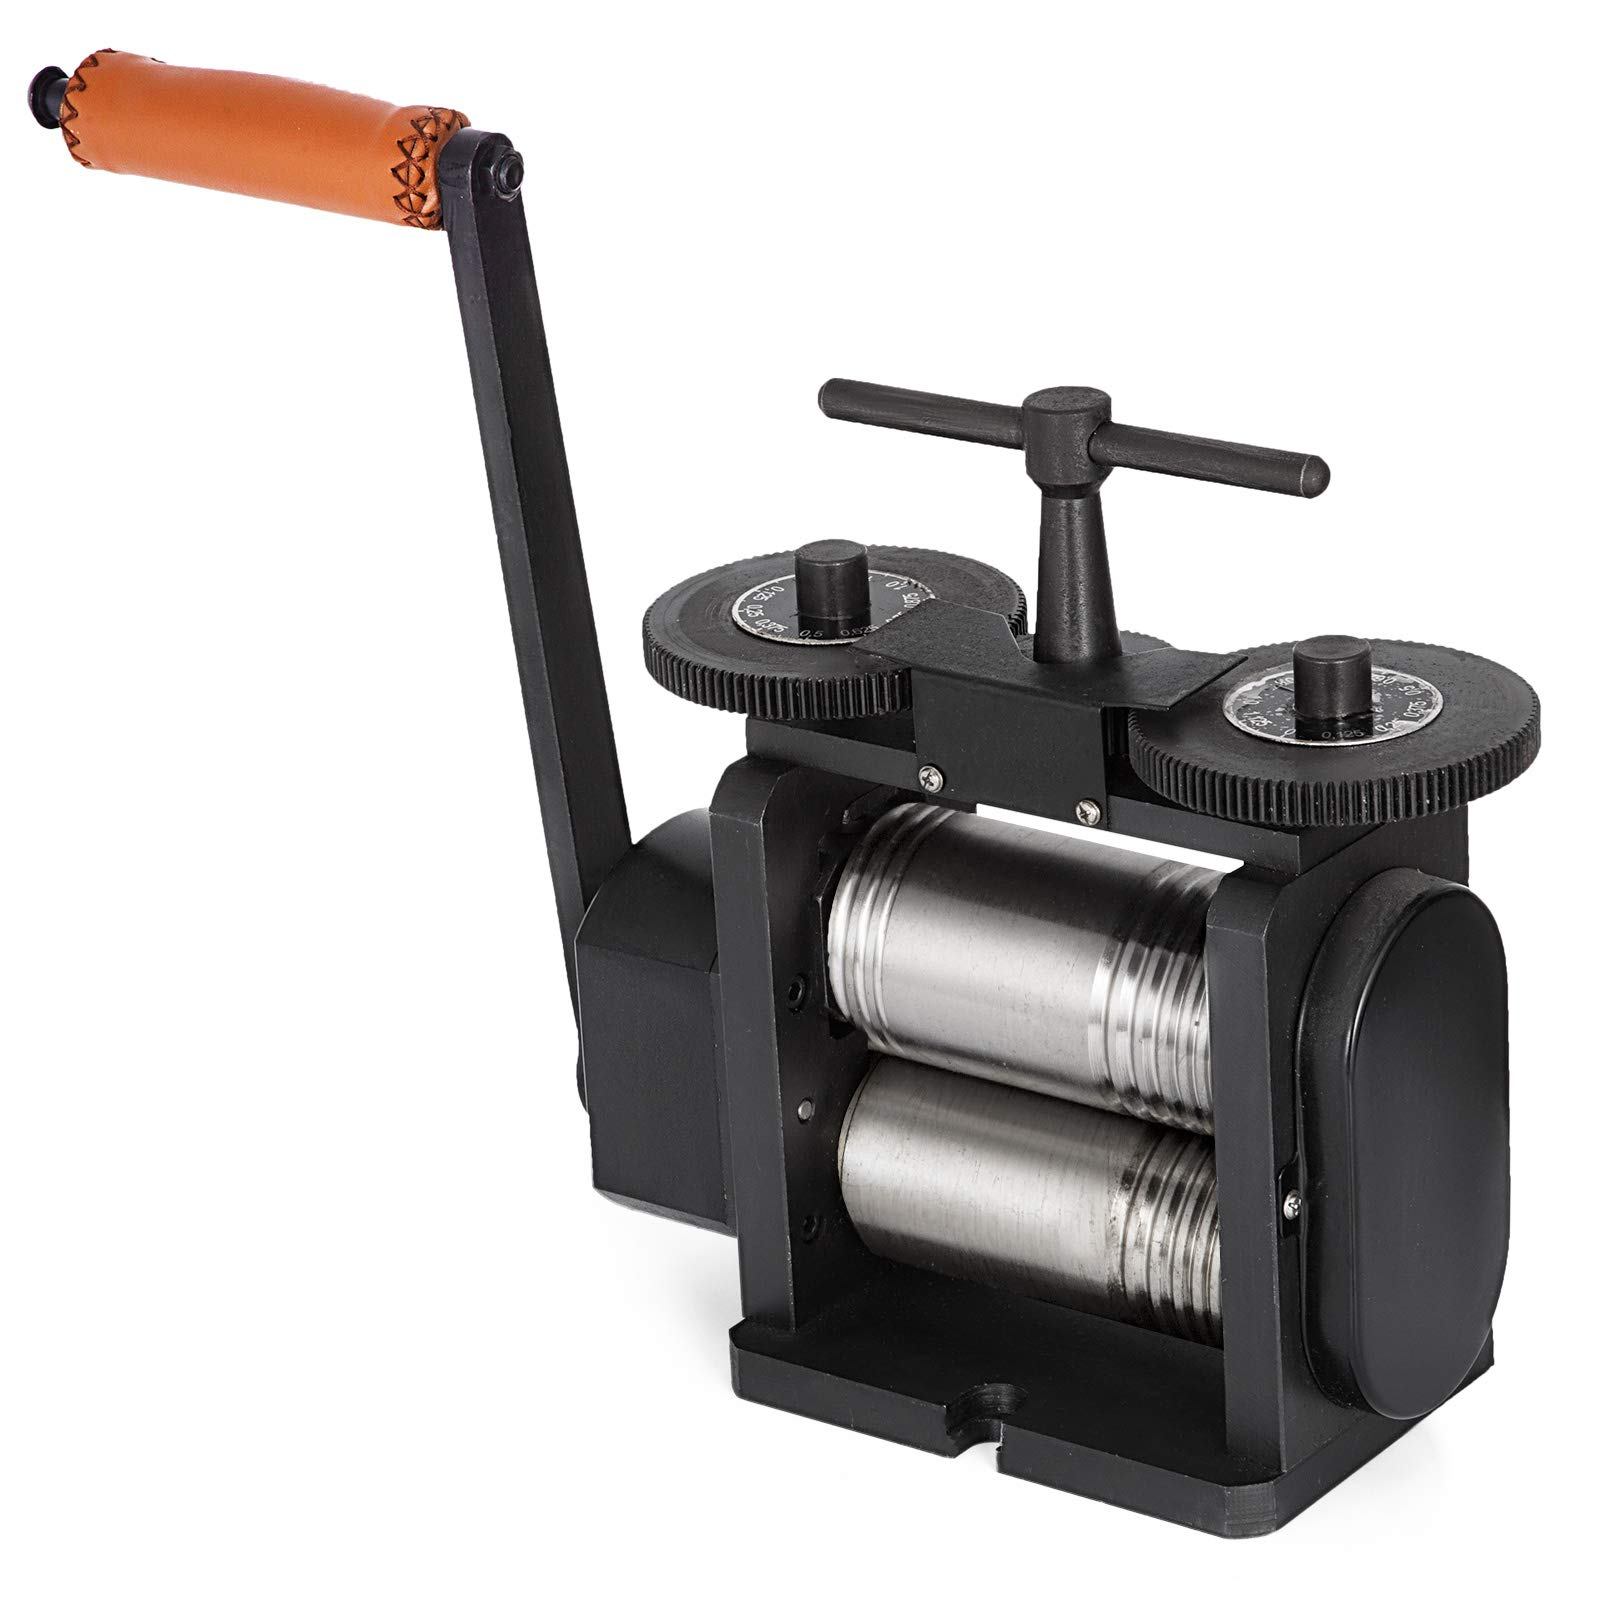 Mophorn Jewelry Rolling Mill Combination Rolling Mill 130mm Wide 65mm Diameter Rollers Manual Rolling Mill Machine Jewelry Marking Tools for Jewelers and Crafts-People by Mophorn (Image #5)